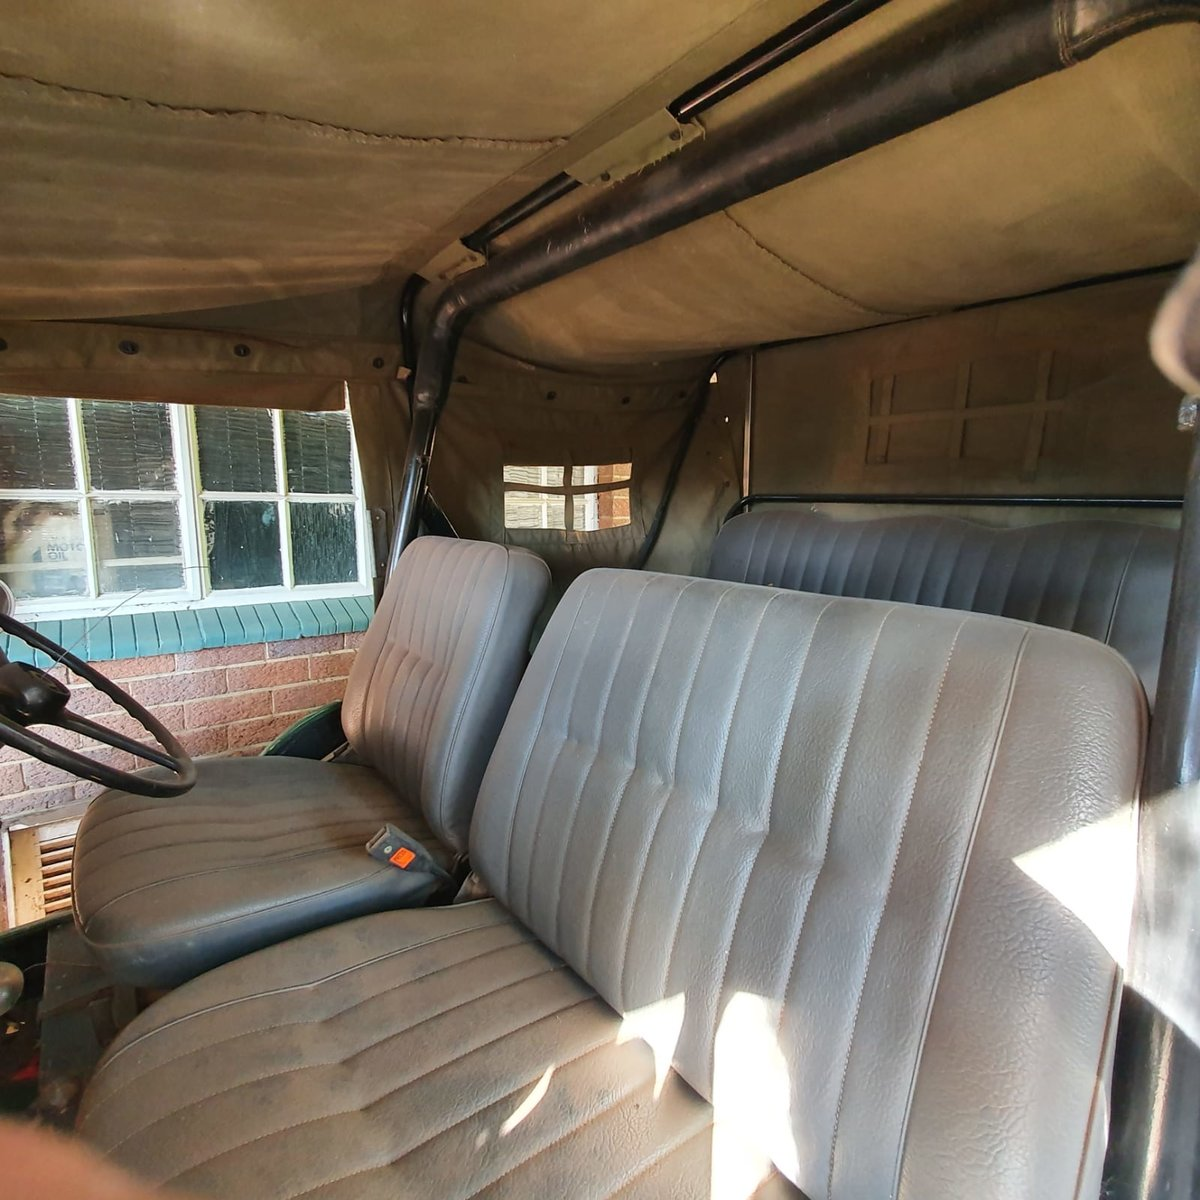 0000 Willy's Kaiser Jeep with front winch For Sale (picture 6 of 9)